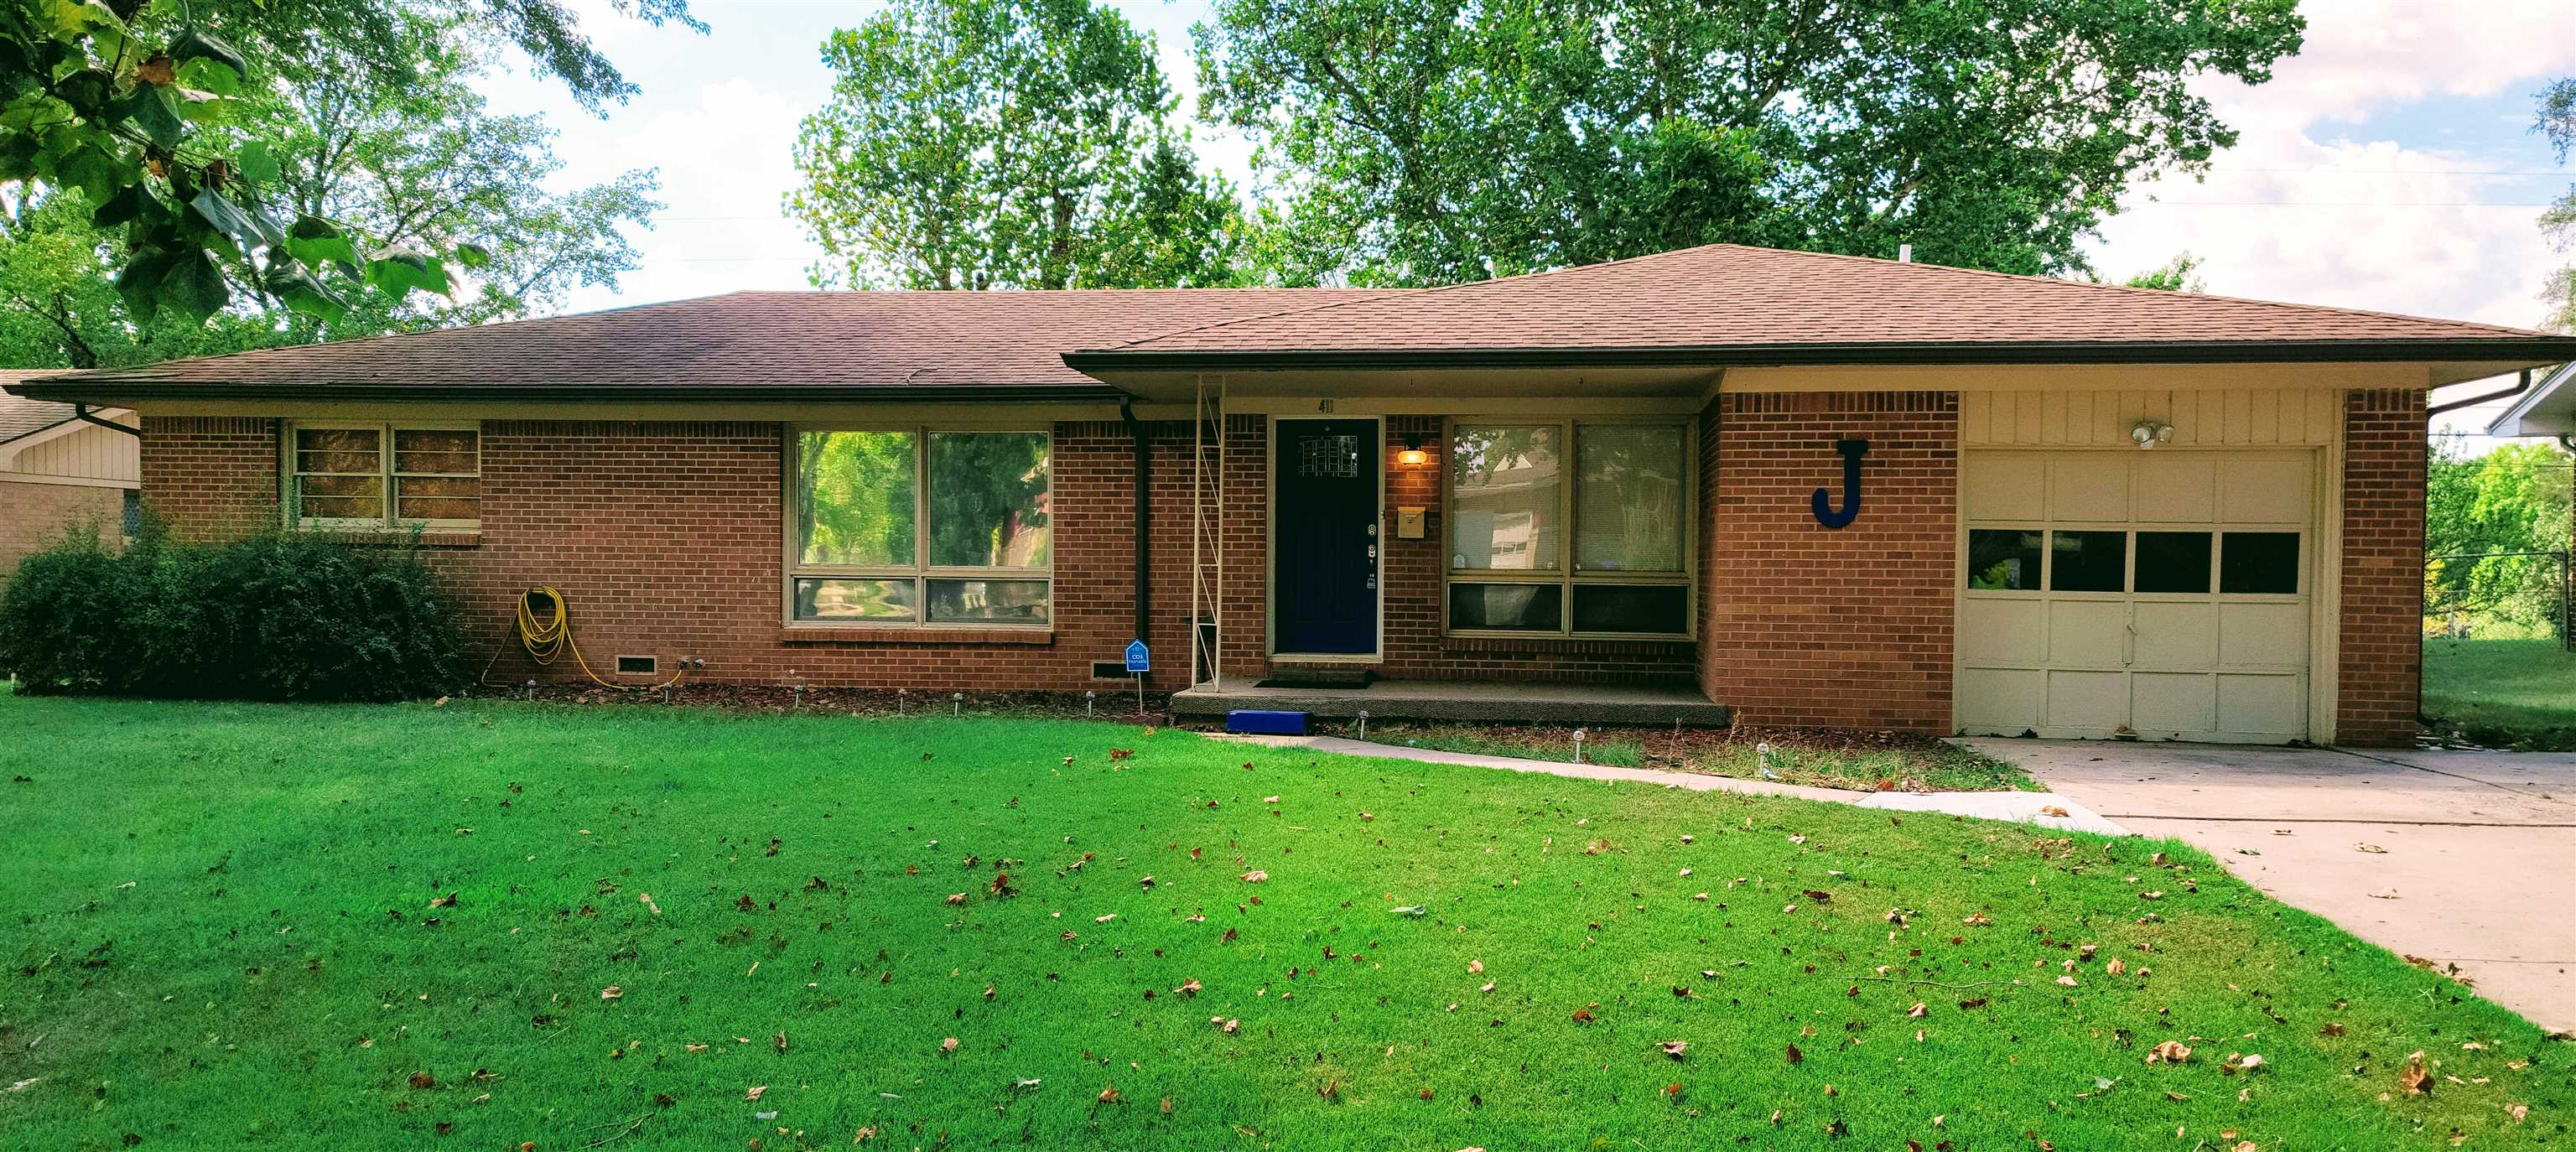 Welcome to this lovely 3 bed, 2 bath home that sits on a quiet street in west Wichita! This home bac